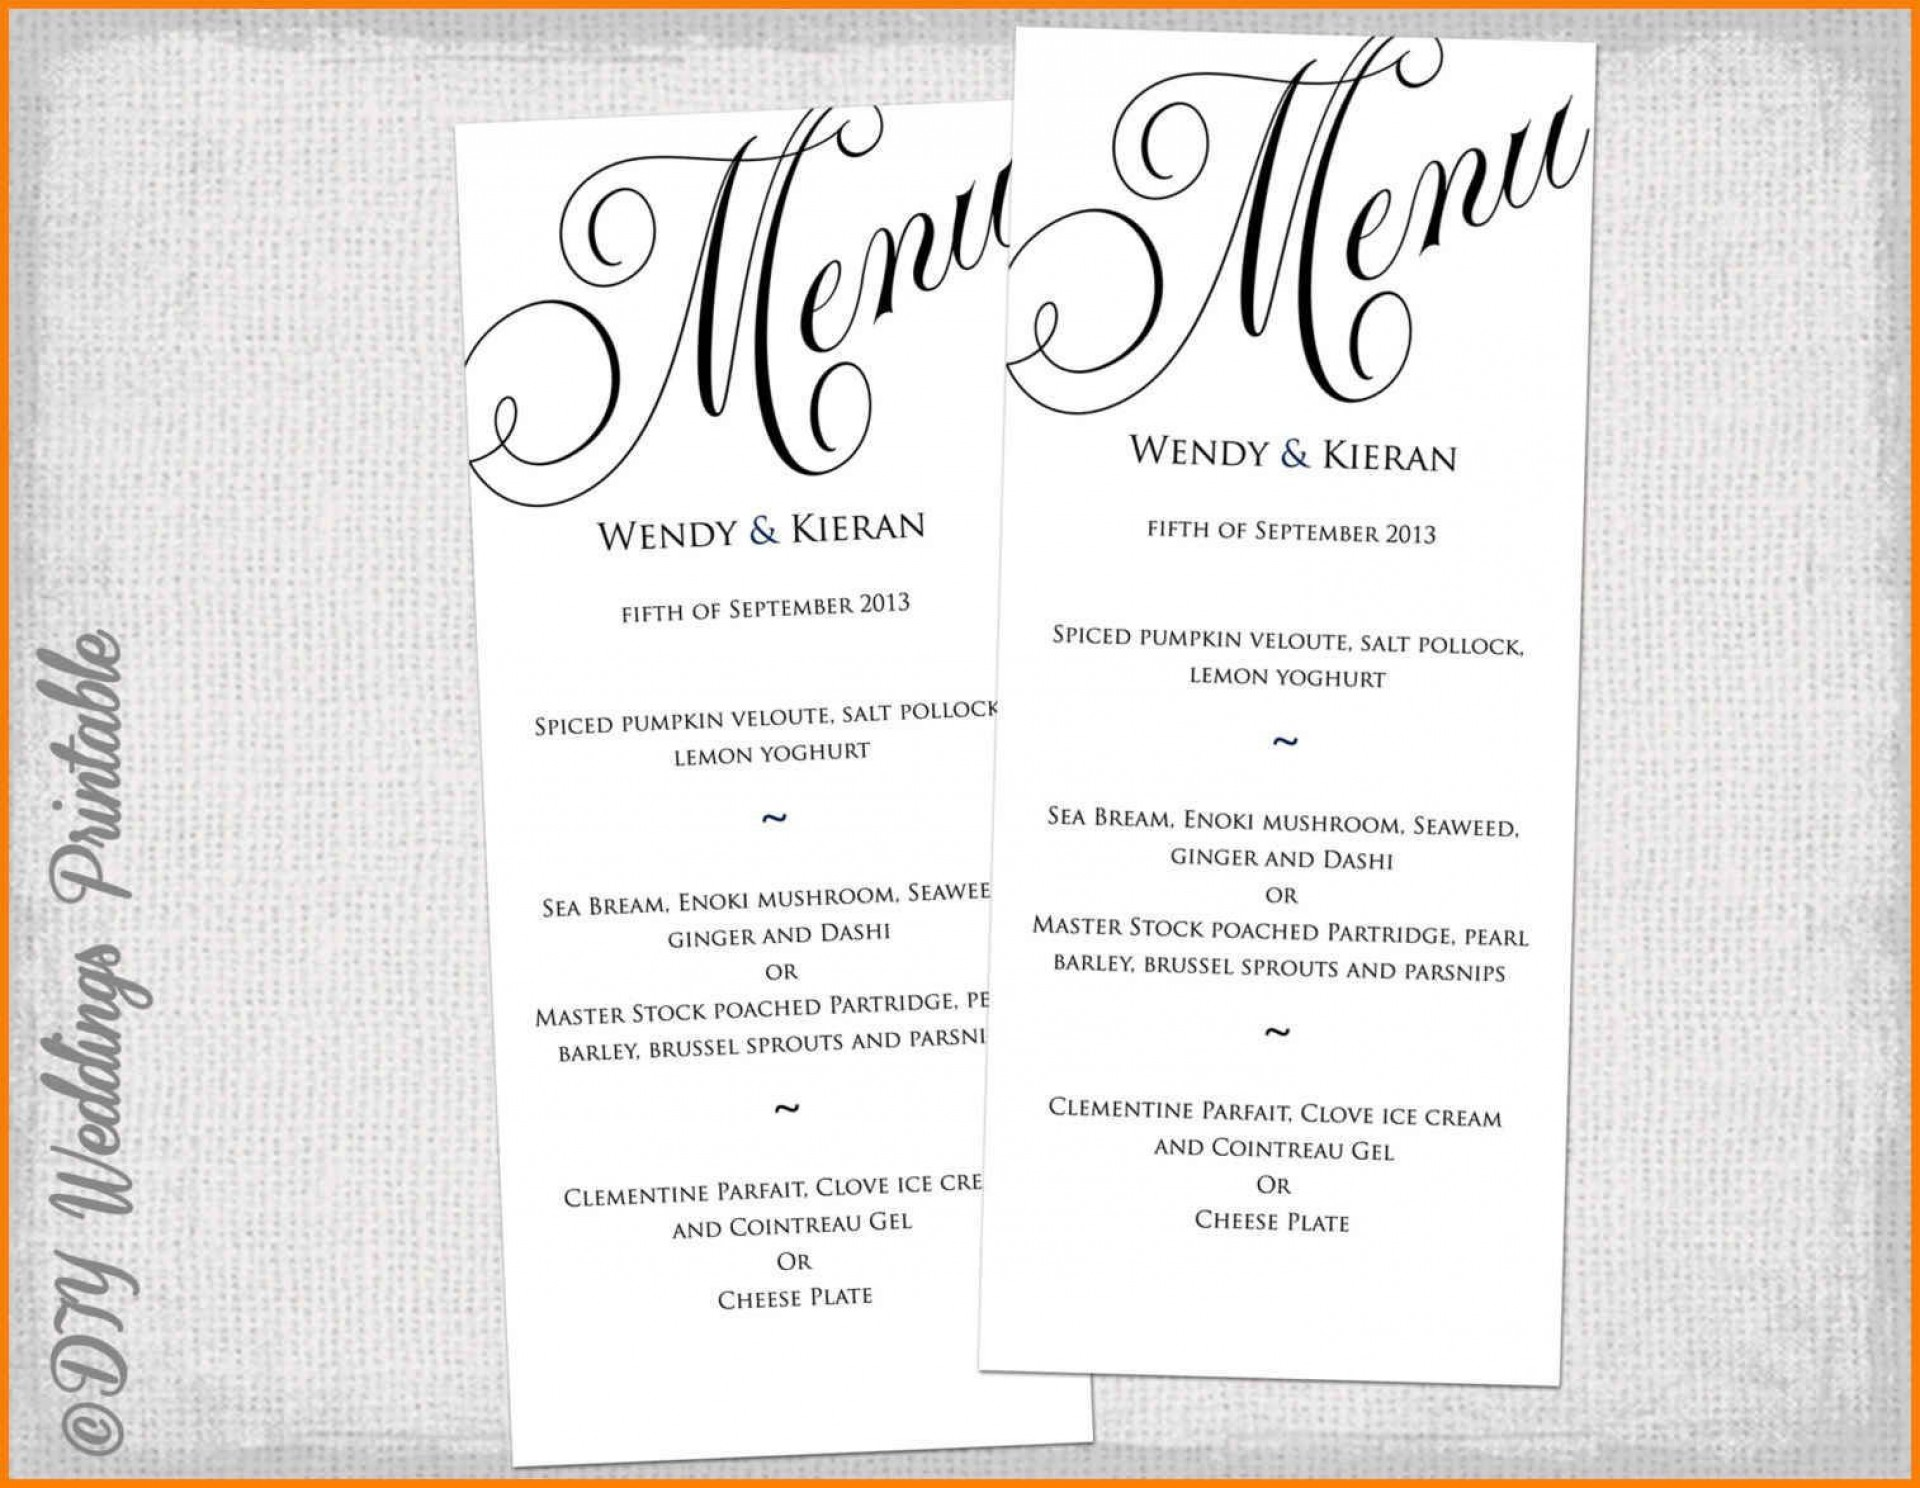 002 Wondrou Dinner Party Menu Template Picture  Card Free Italian Word1920